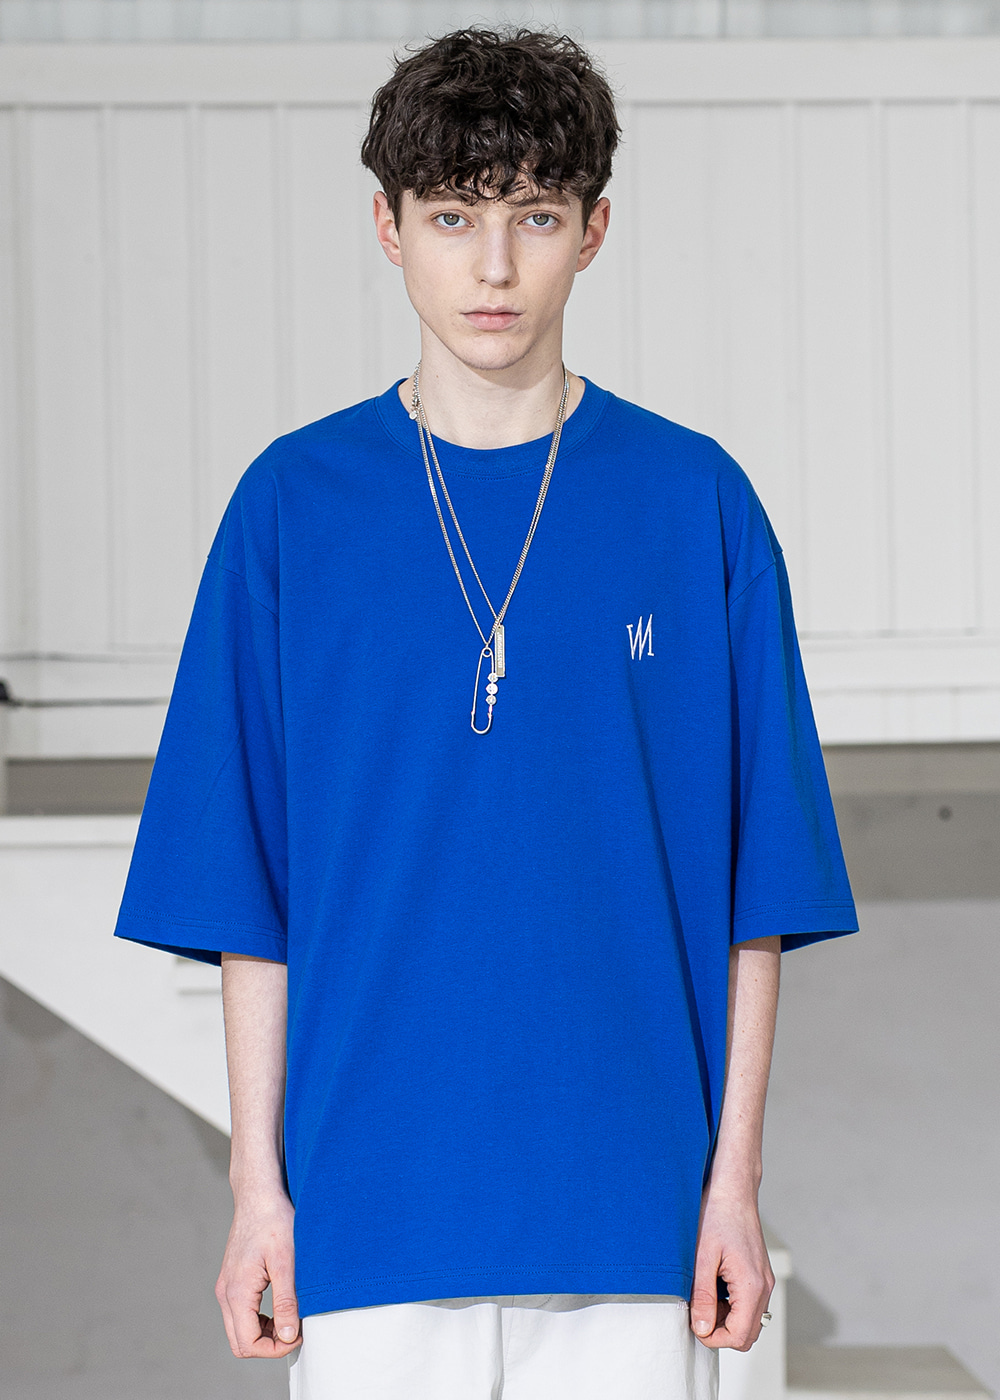 SIGNATURE OVERSIZED T-SHIRTS MSZTS004-BL